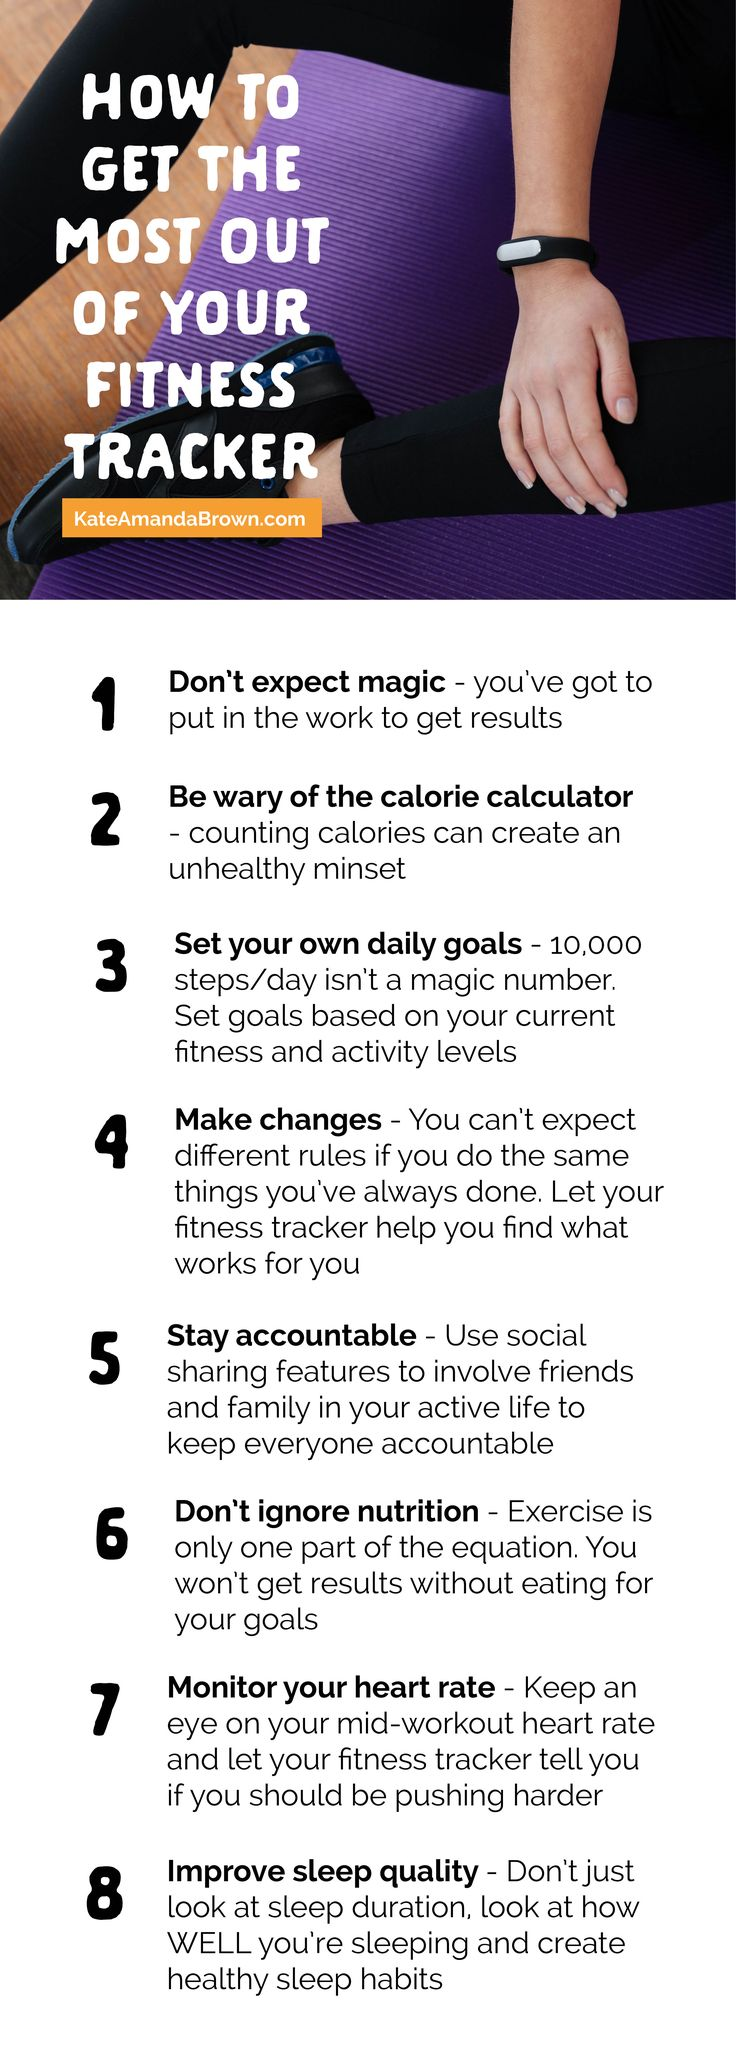 If being fit and healthy was as easy as strapping on a fitness tracker, we'd all be athletes! So, here's how to get the most out of your fitness tracker | Kate Amanda Brown | fitness watch, how to use fitness tracker, how to get fit, how to lose weight with fitness tracker, fitness tracker infographic, fitness watch infographic, wareables, wareables infographic